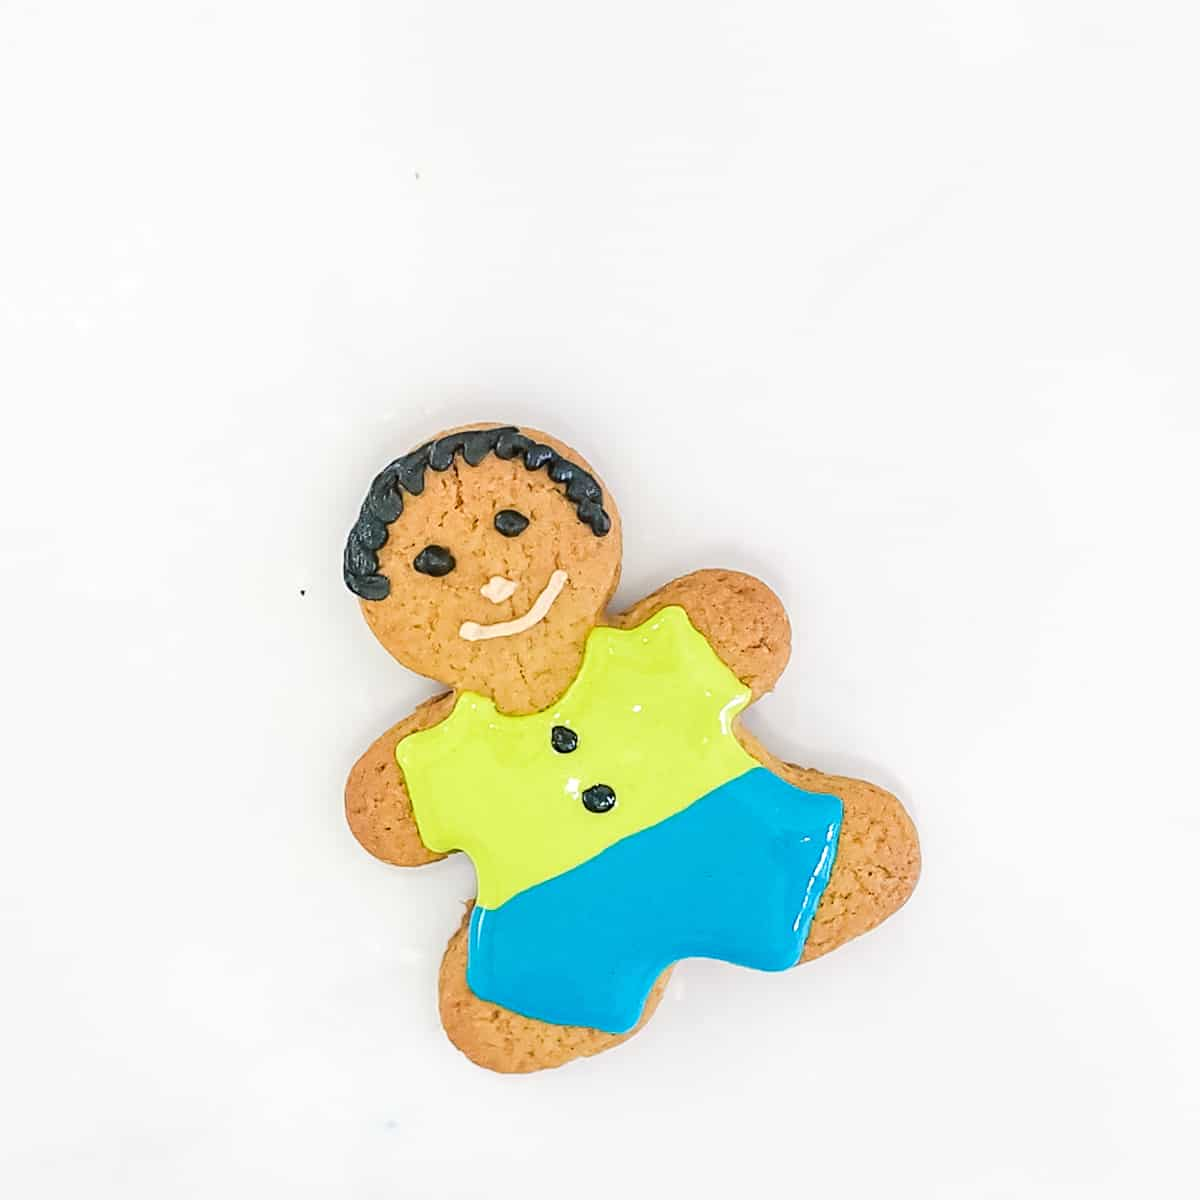 A gingerbread boy cookie with green icing shirt and blue icing pants.